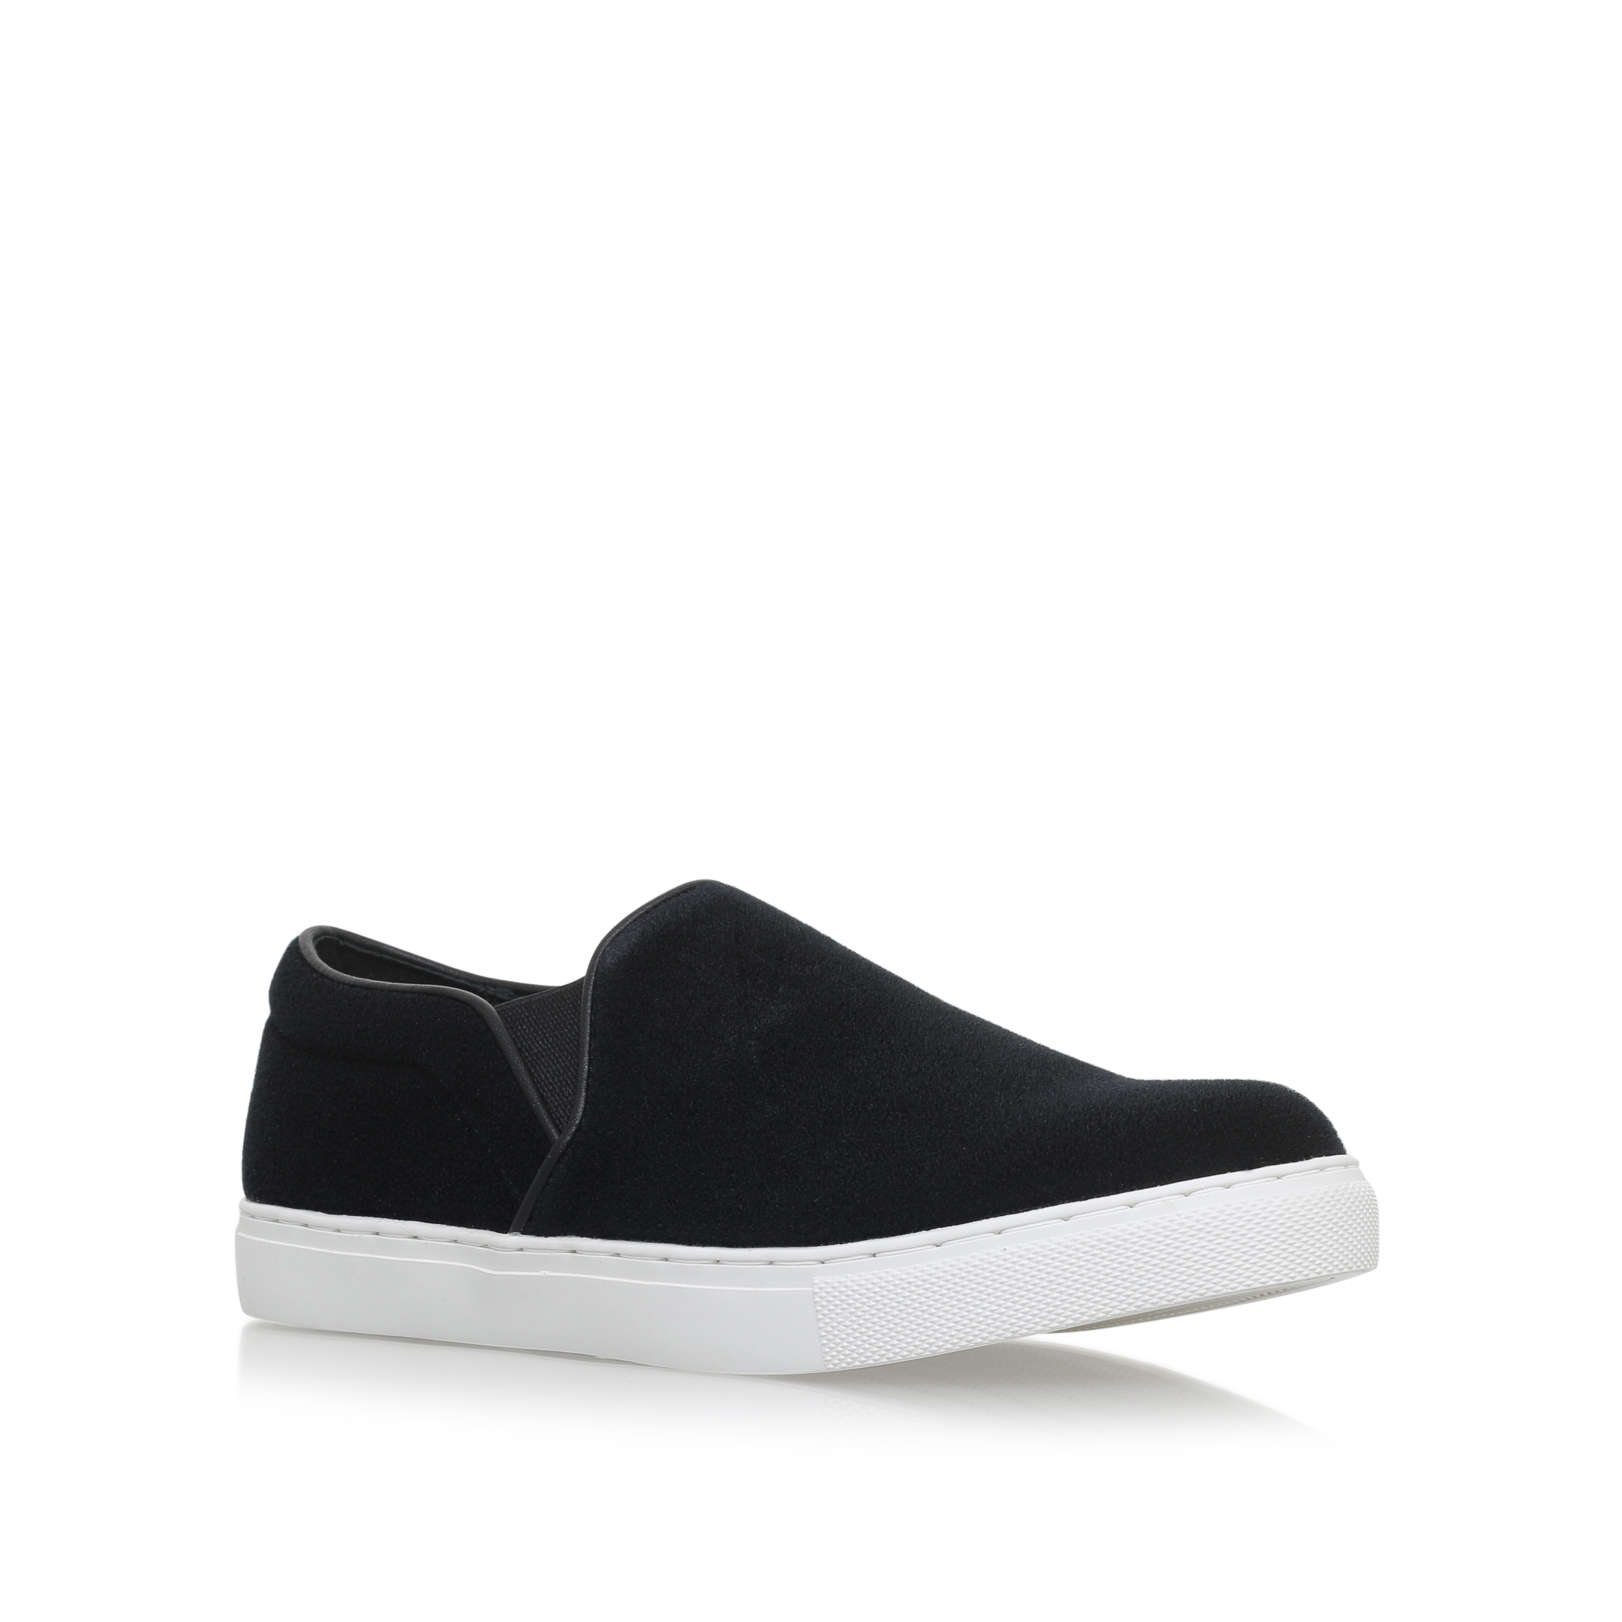 NN SLIPON BLACK